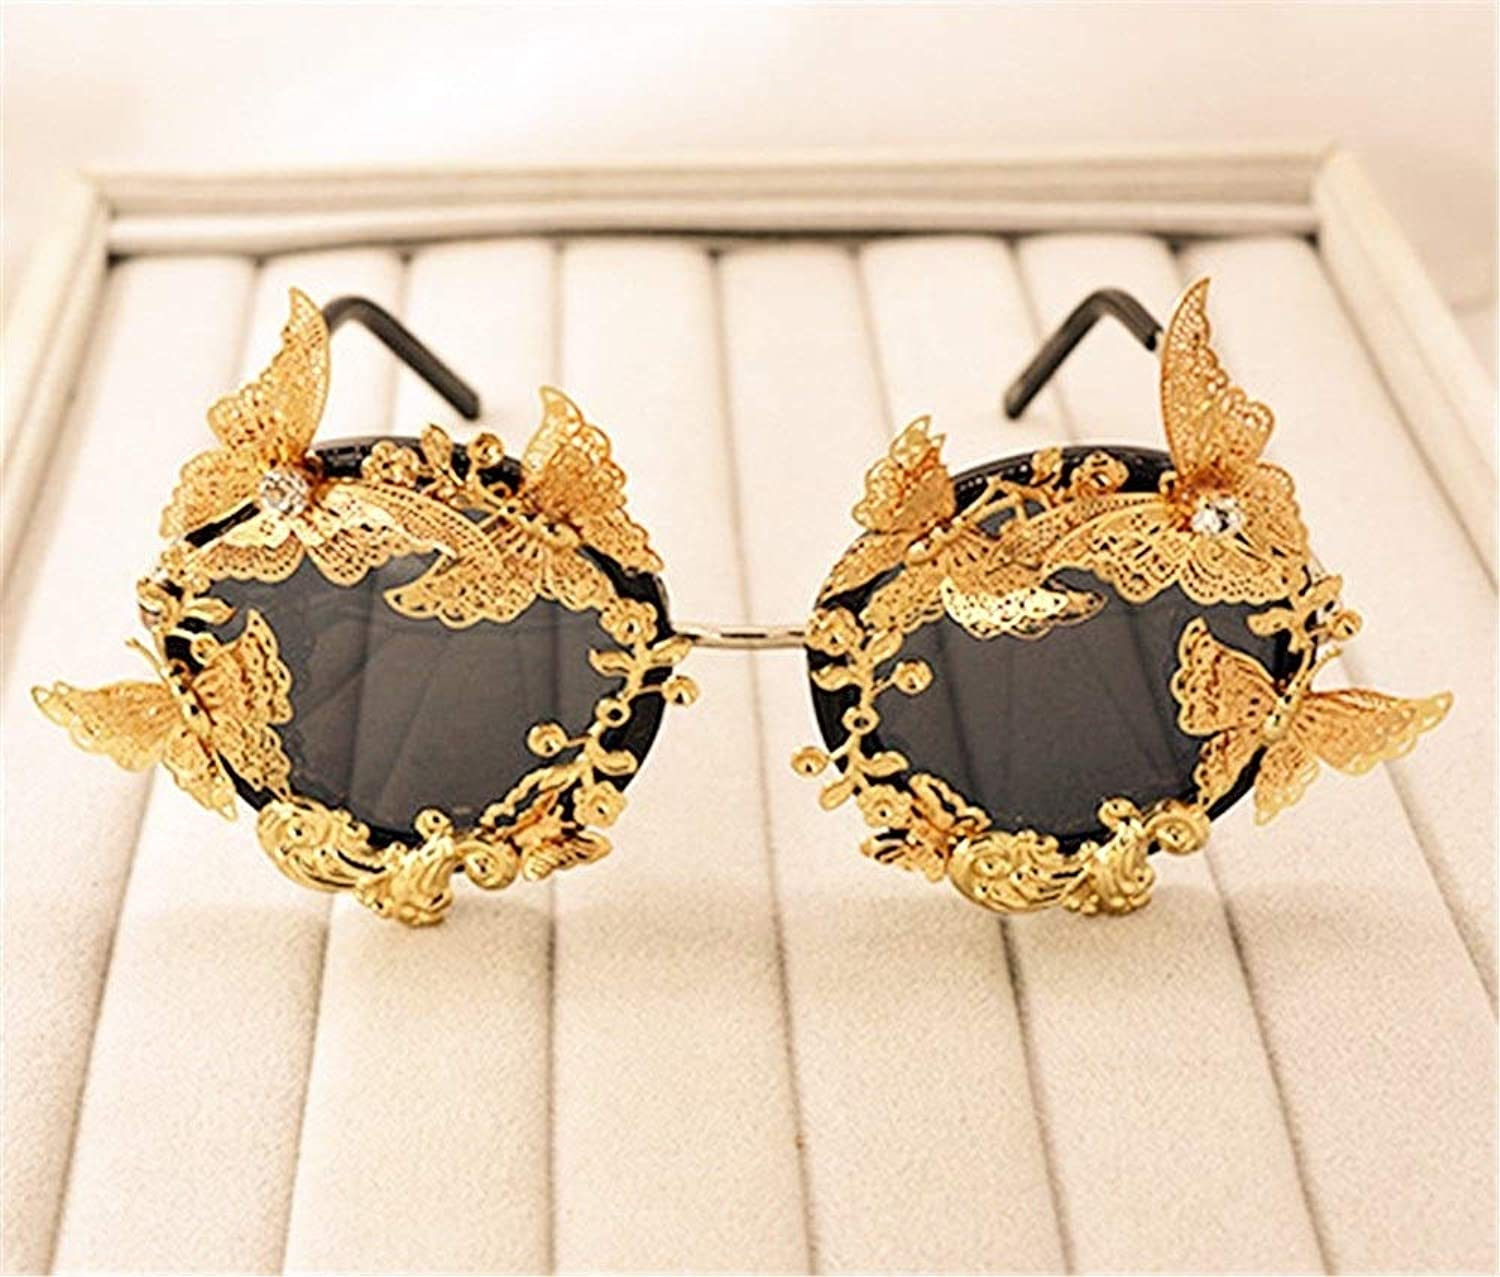 Tridimensional golden Butterfly Carve Patterns Baroque Sunglasses,Ball &Party Decoration Sunglasses for Women & Girls Jewelry Gift